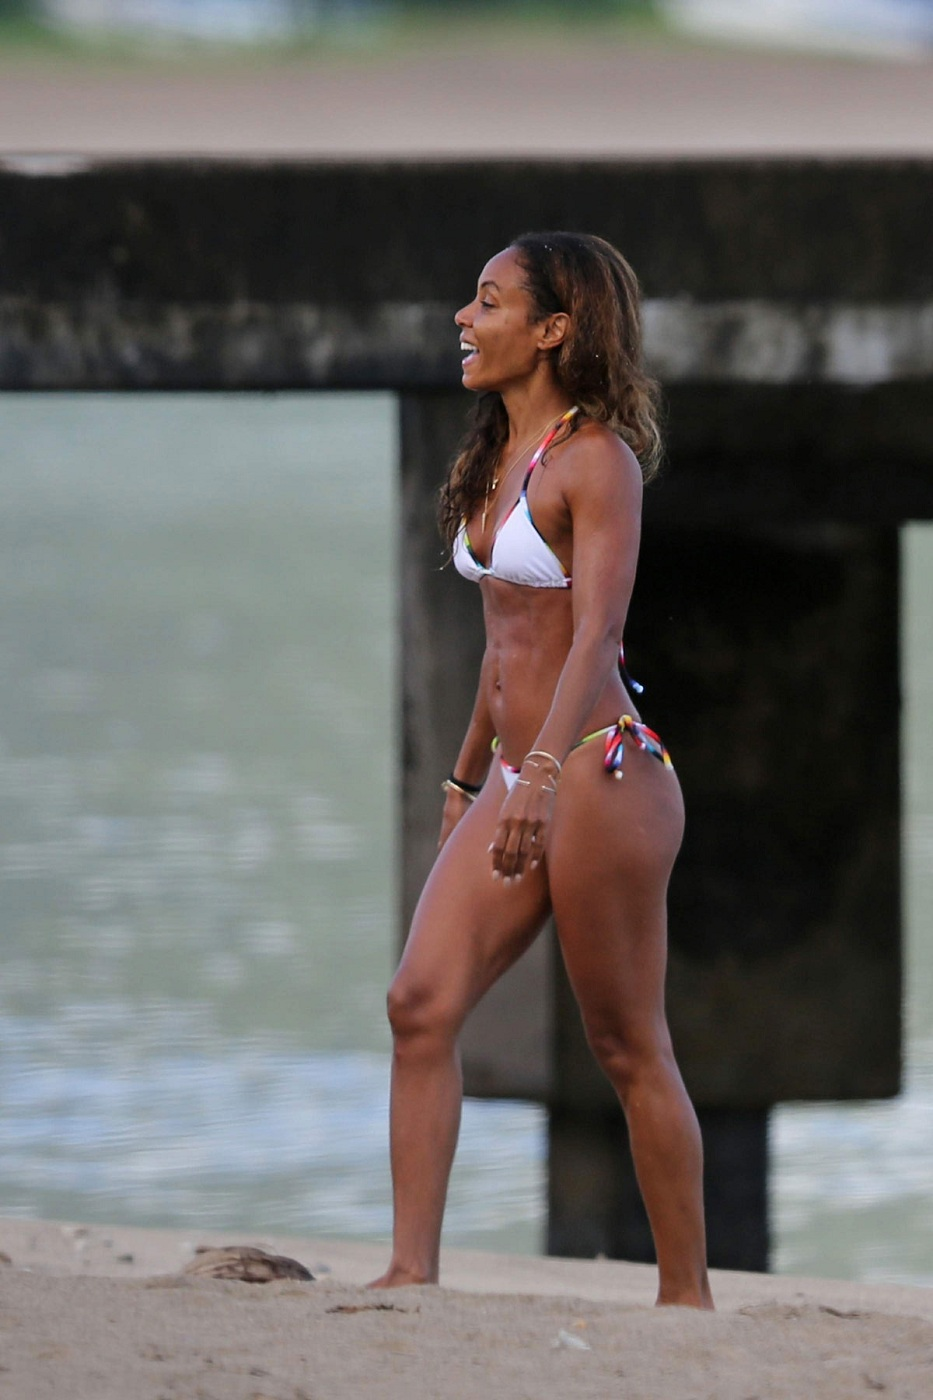 JADA-PINKETT-SMITH-in-Bikini-at-a-Beach-in-Hawaii-15.jpg - 218.29 KB